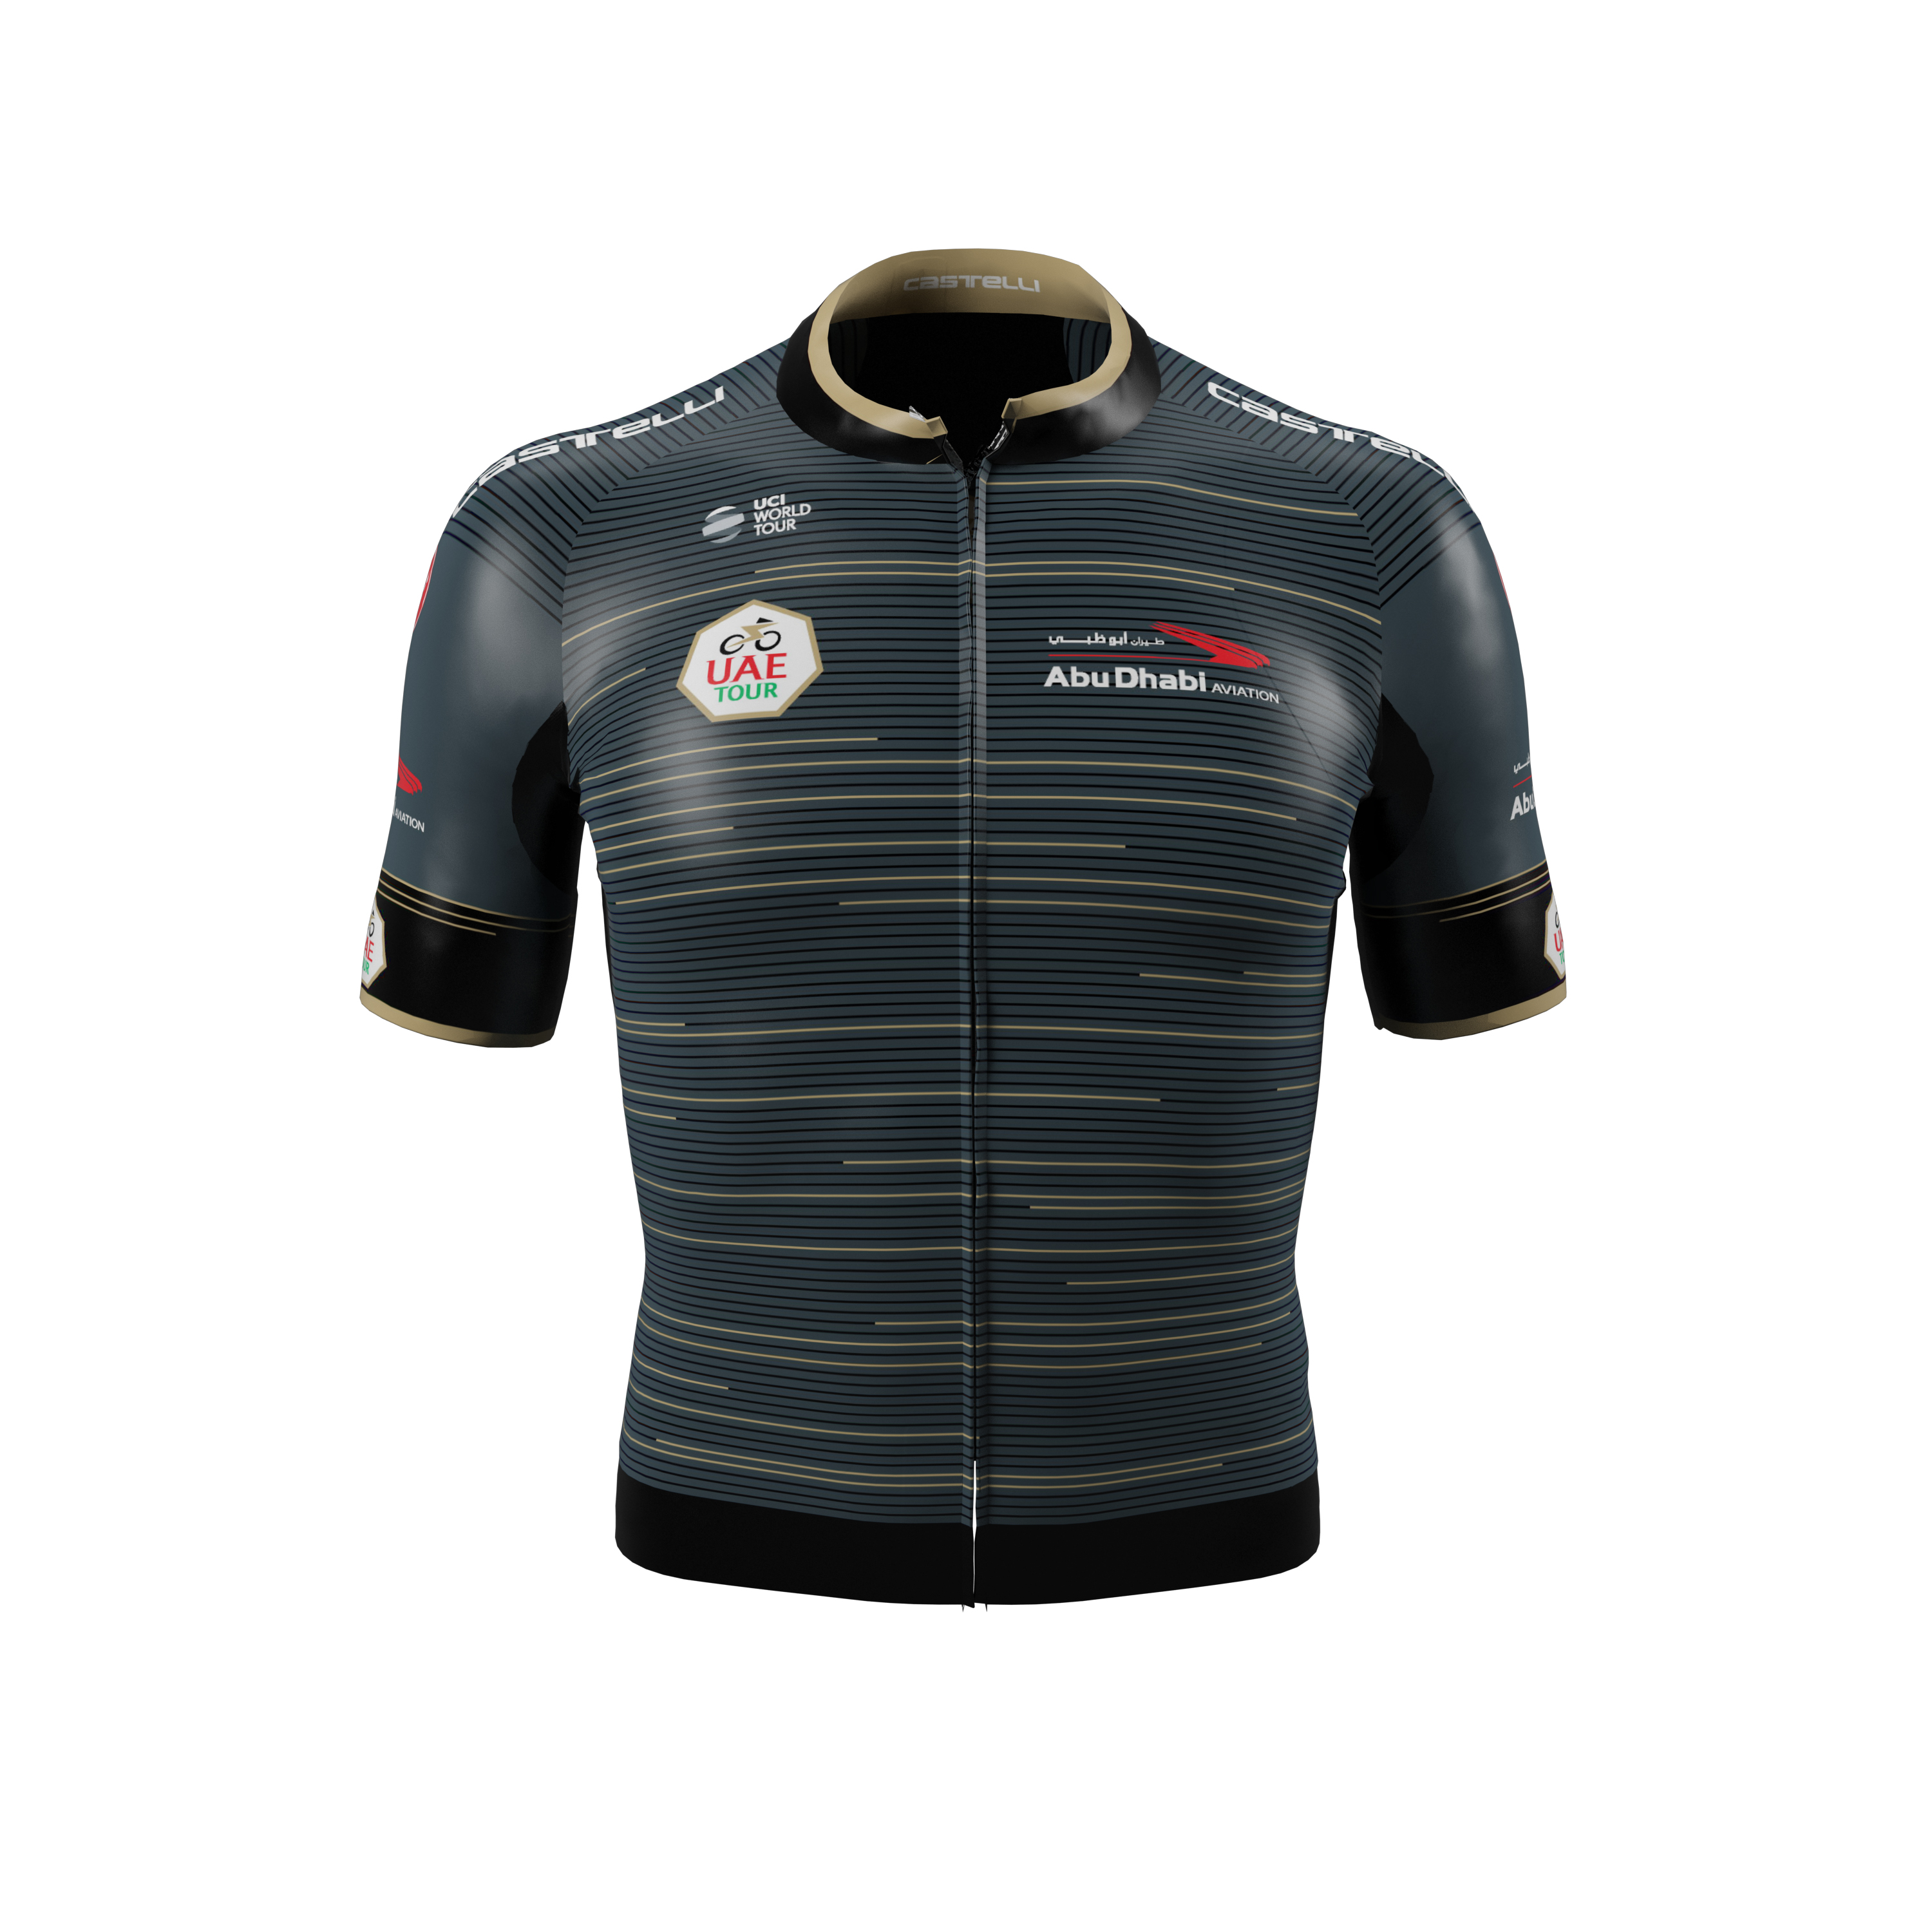 Worn every day, starting from stage 2, by the rider who gained more Intermedio Sprint points than any other driver.